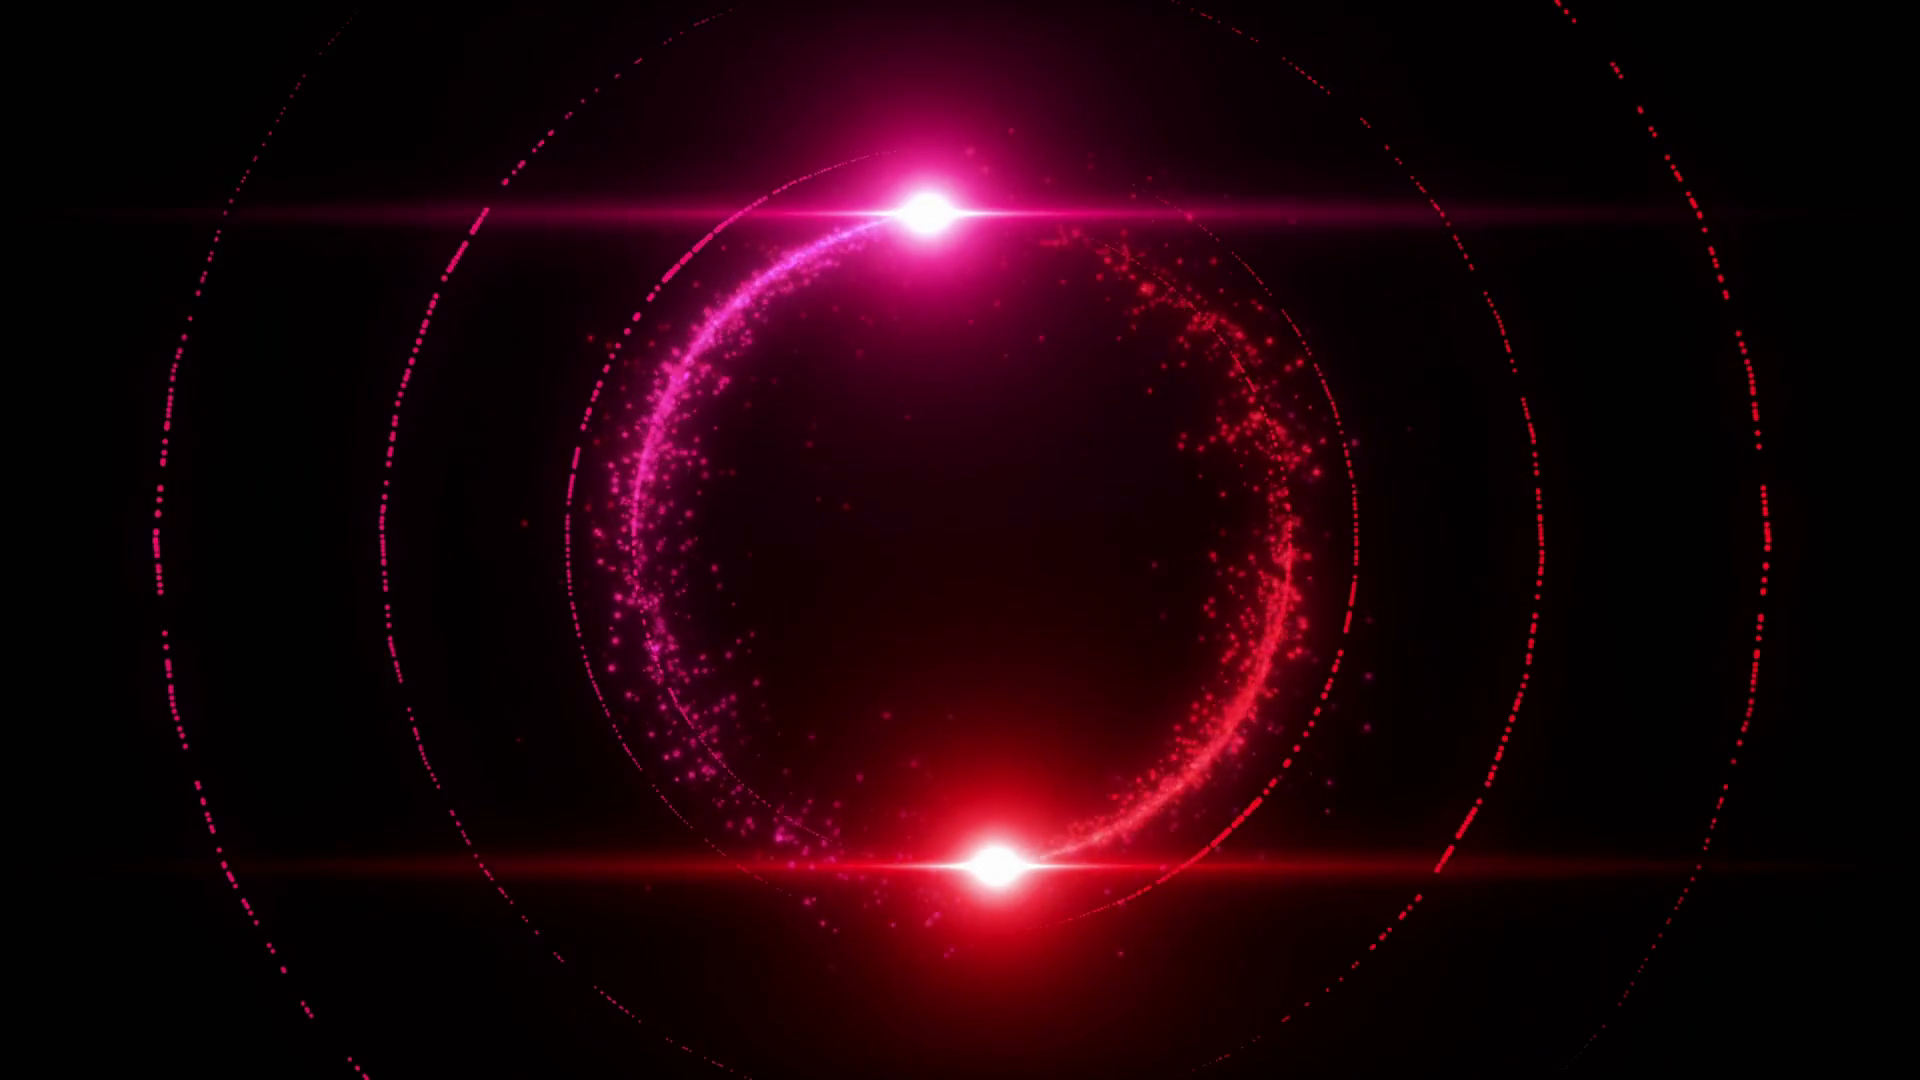 Download Red Lense Flare Png () png images.